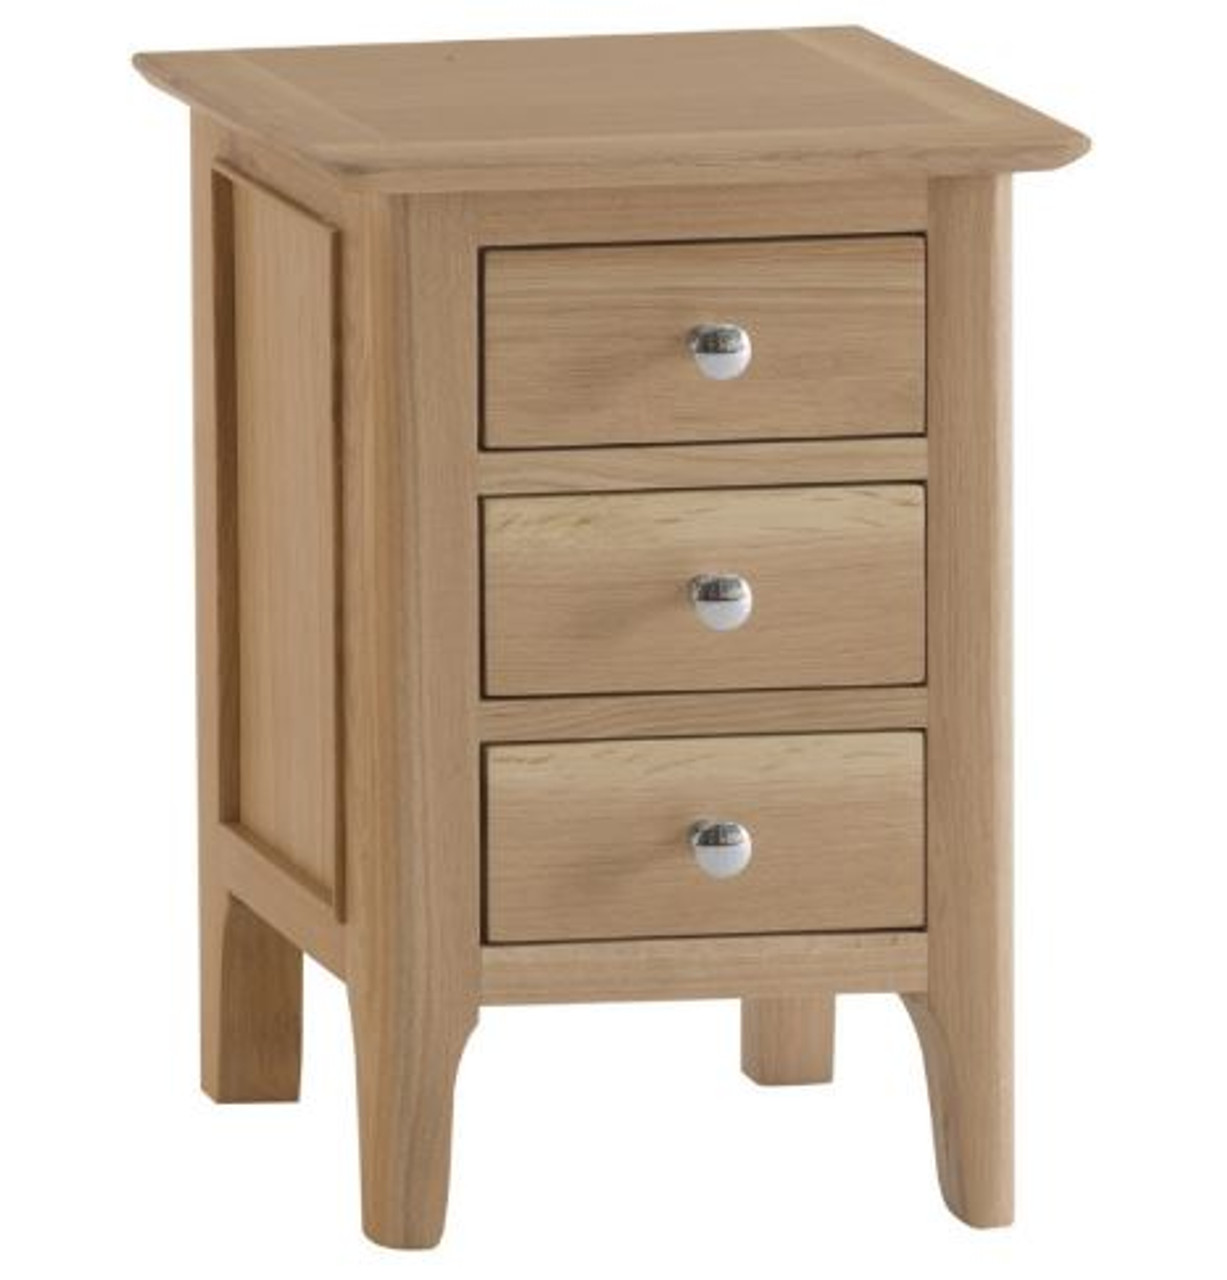 Picture of: Robinhood 3 Drawer Small Bedside Table Nt Sbsc Natural Oak Finish My Furniture Store Furniture And Bedding Super Store Australia